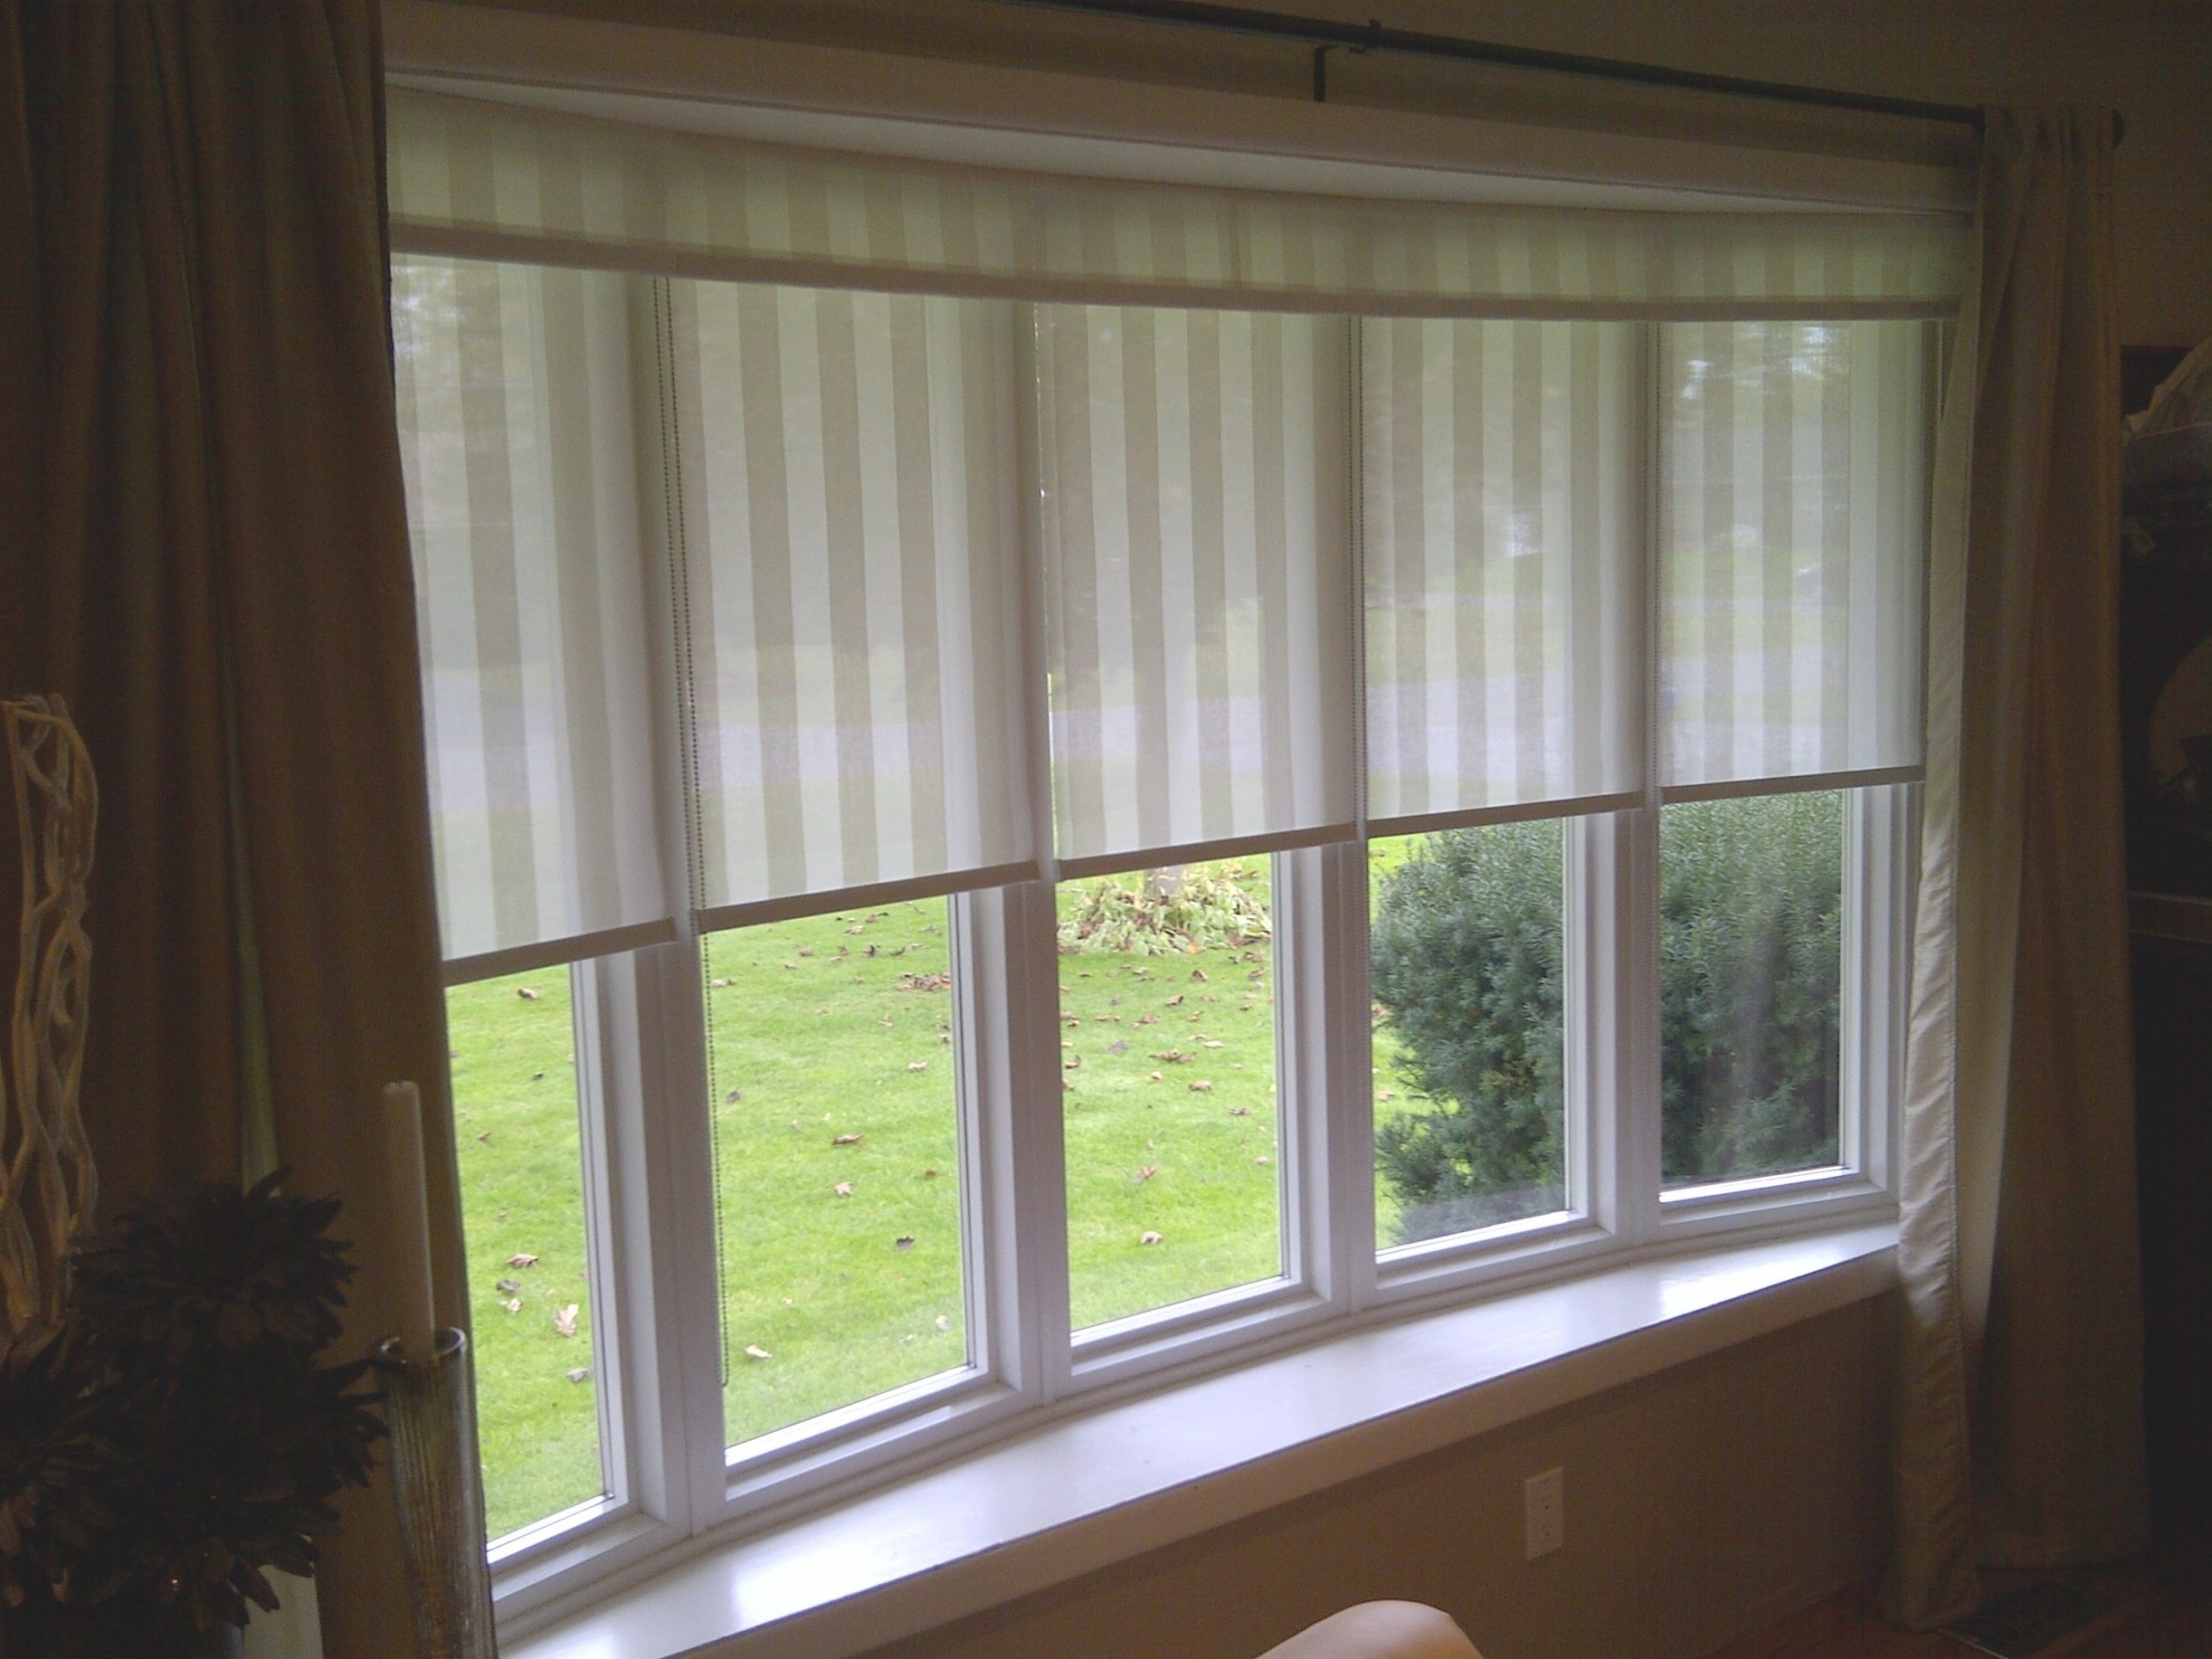 Bay Window Blinds And Curtains   Curtain Ideas intended for Windows With Blinds Inside